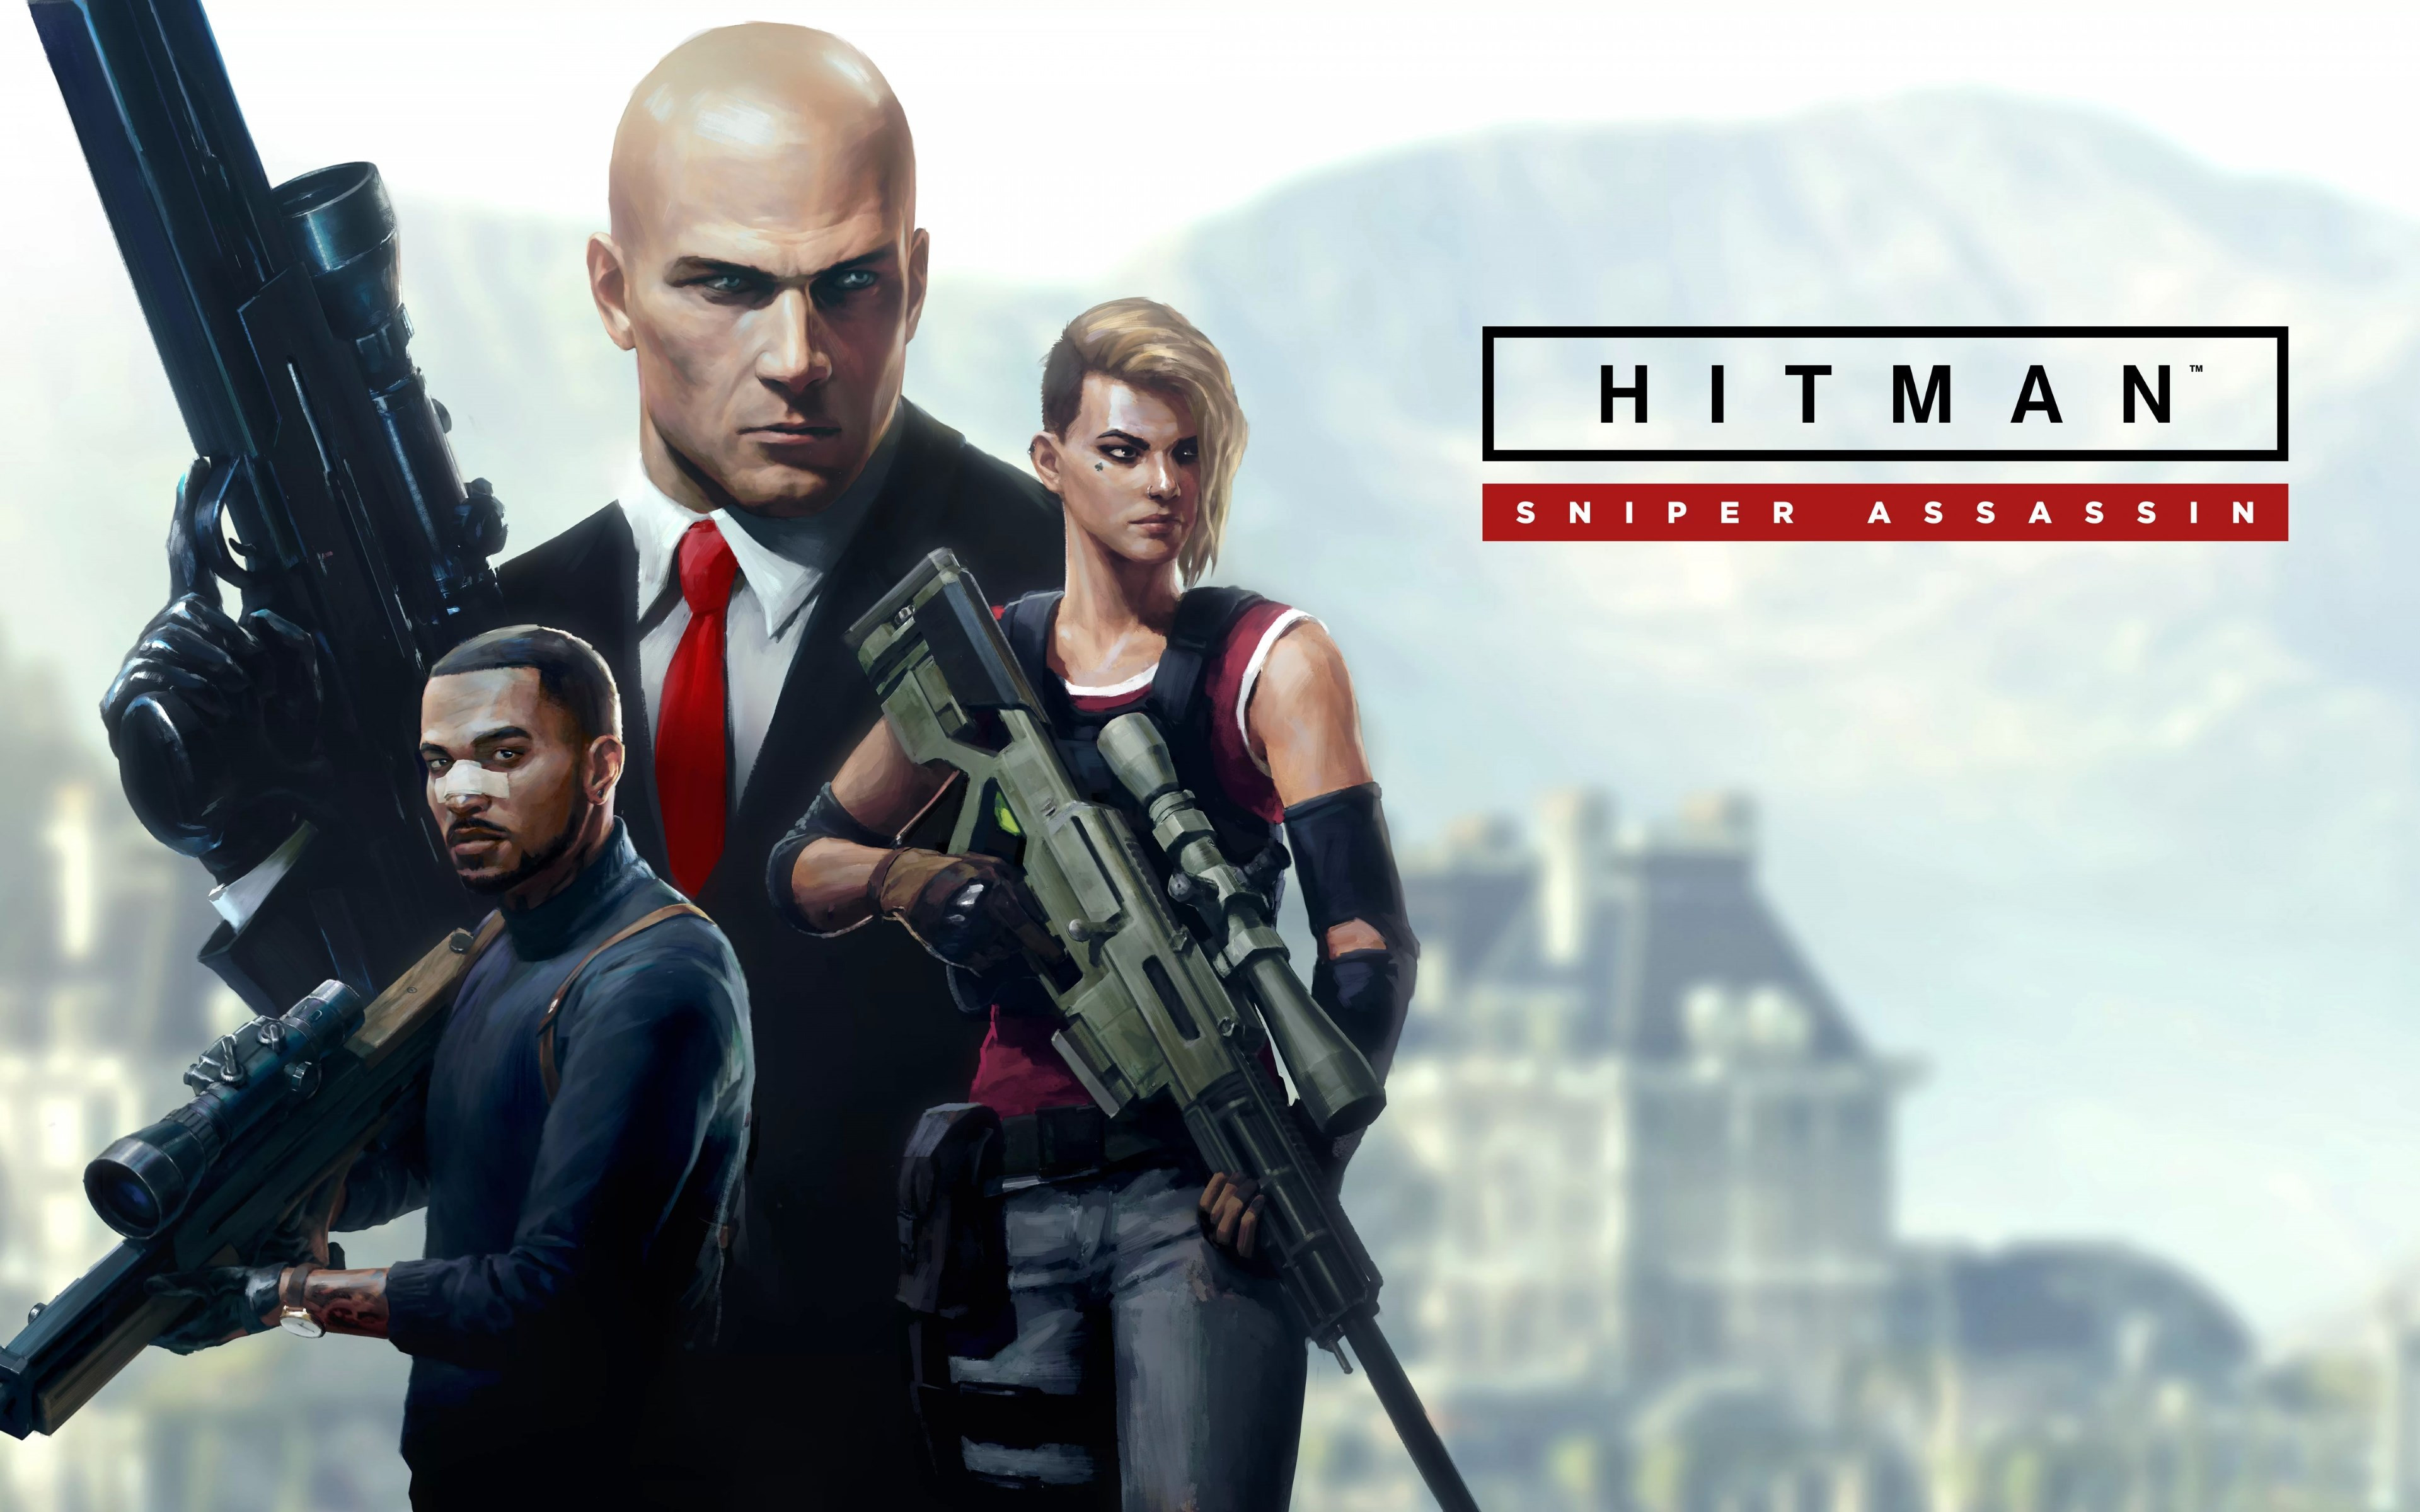 Hitman Sniper Assassin wallpaper 3840x2400